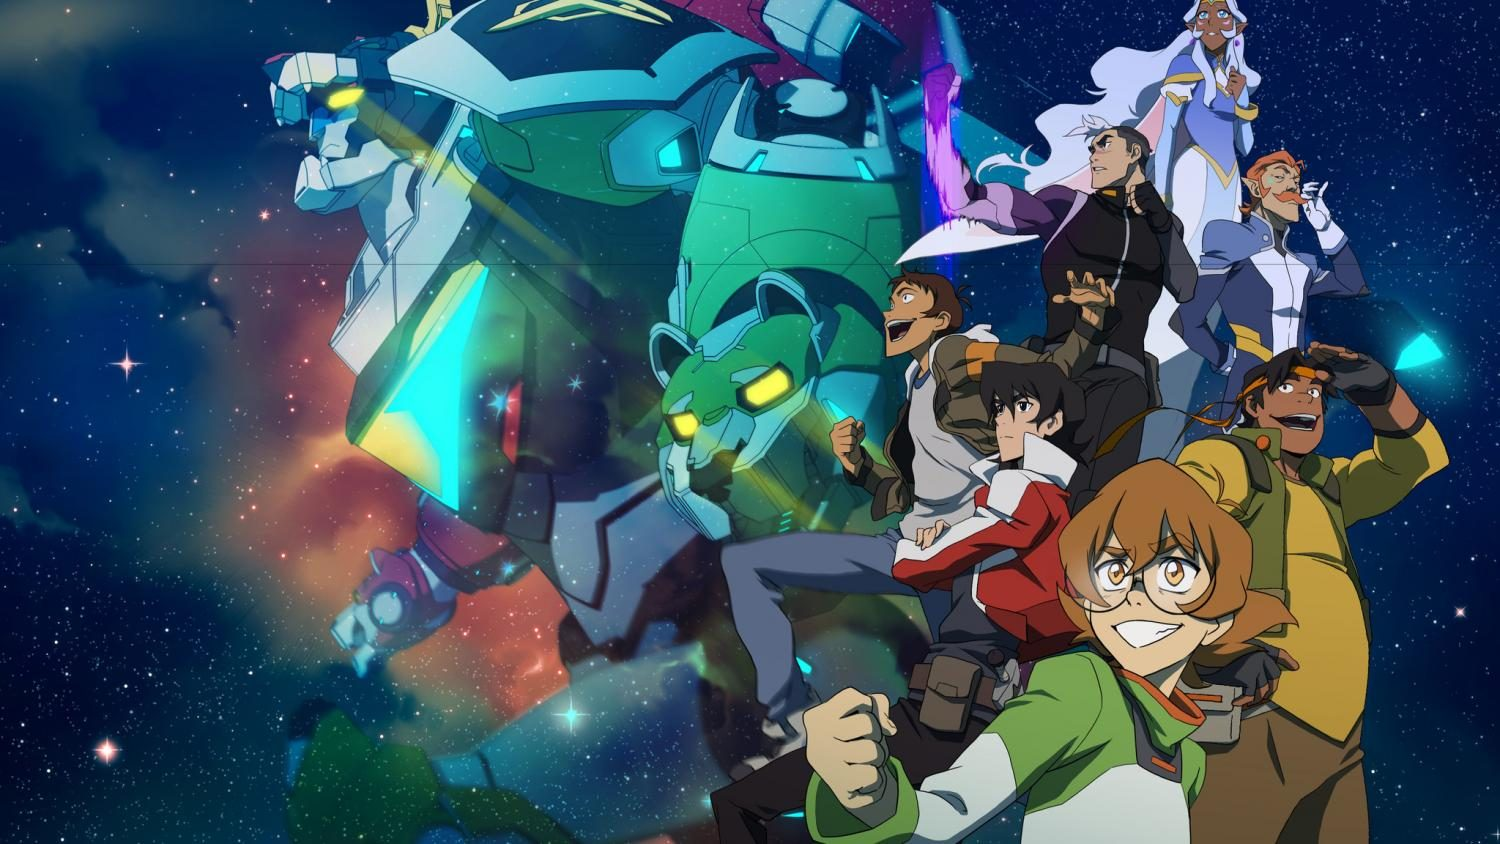 The+Voltron+crew+in+space+looking+amazing+Photo++courtesy+Of+Dreamworks+Entertainment